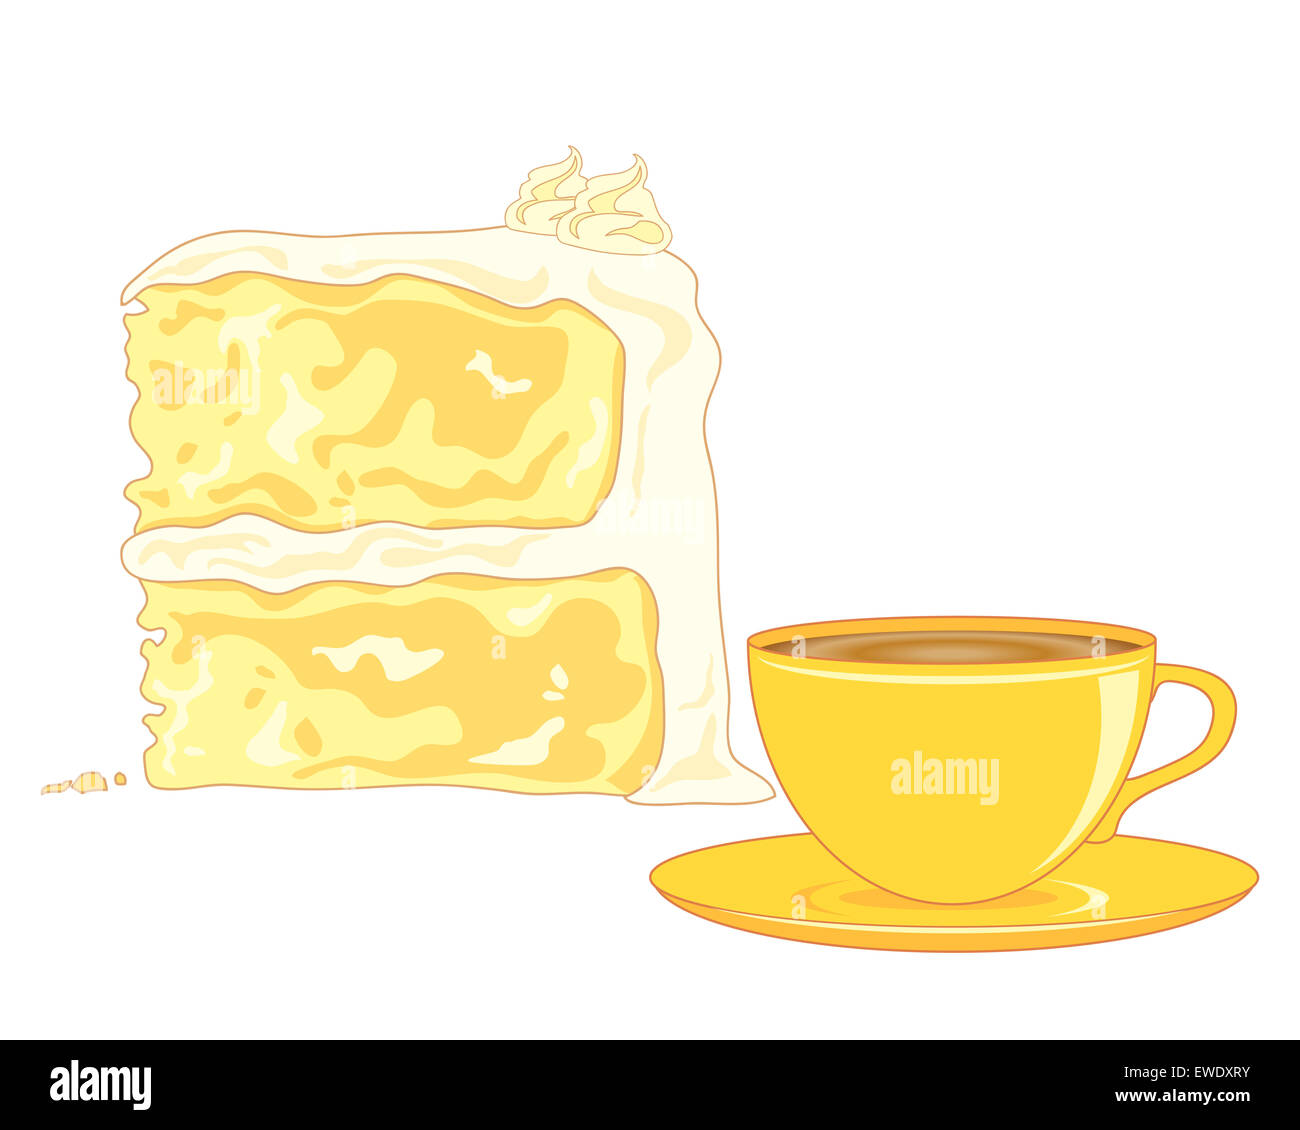 an illustration of a butter sponge cake  and a cup of tea on a white background - Stock Image